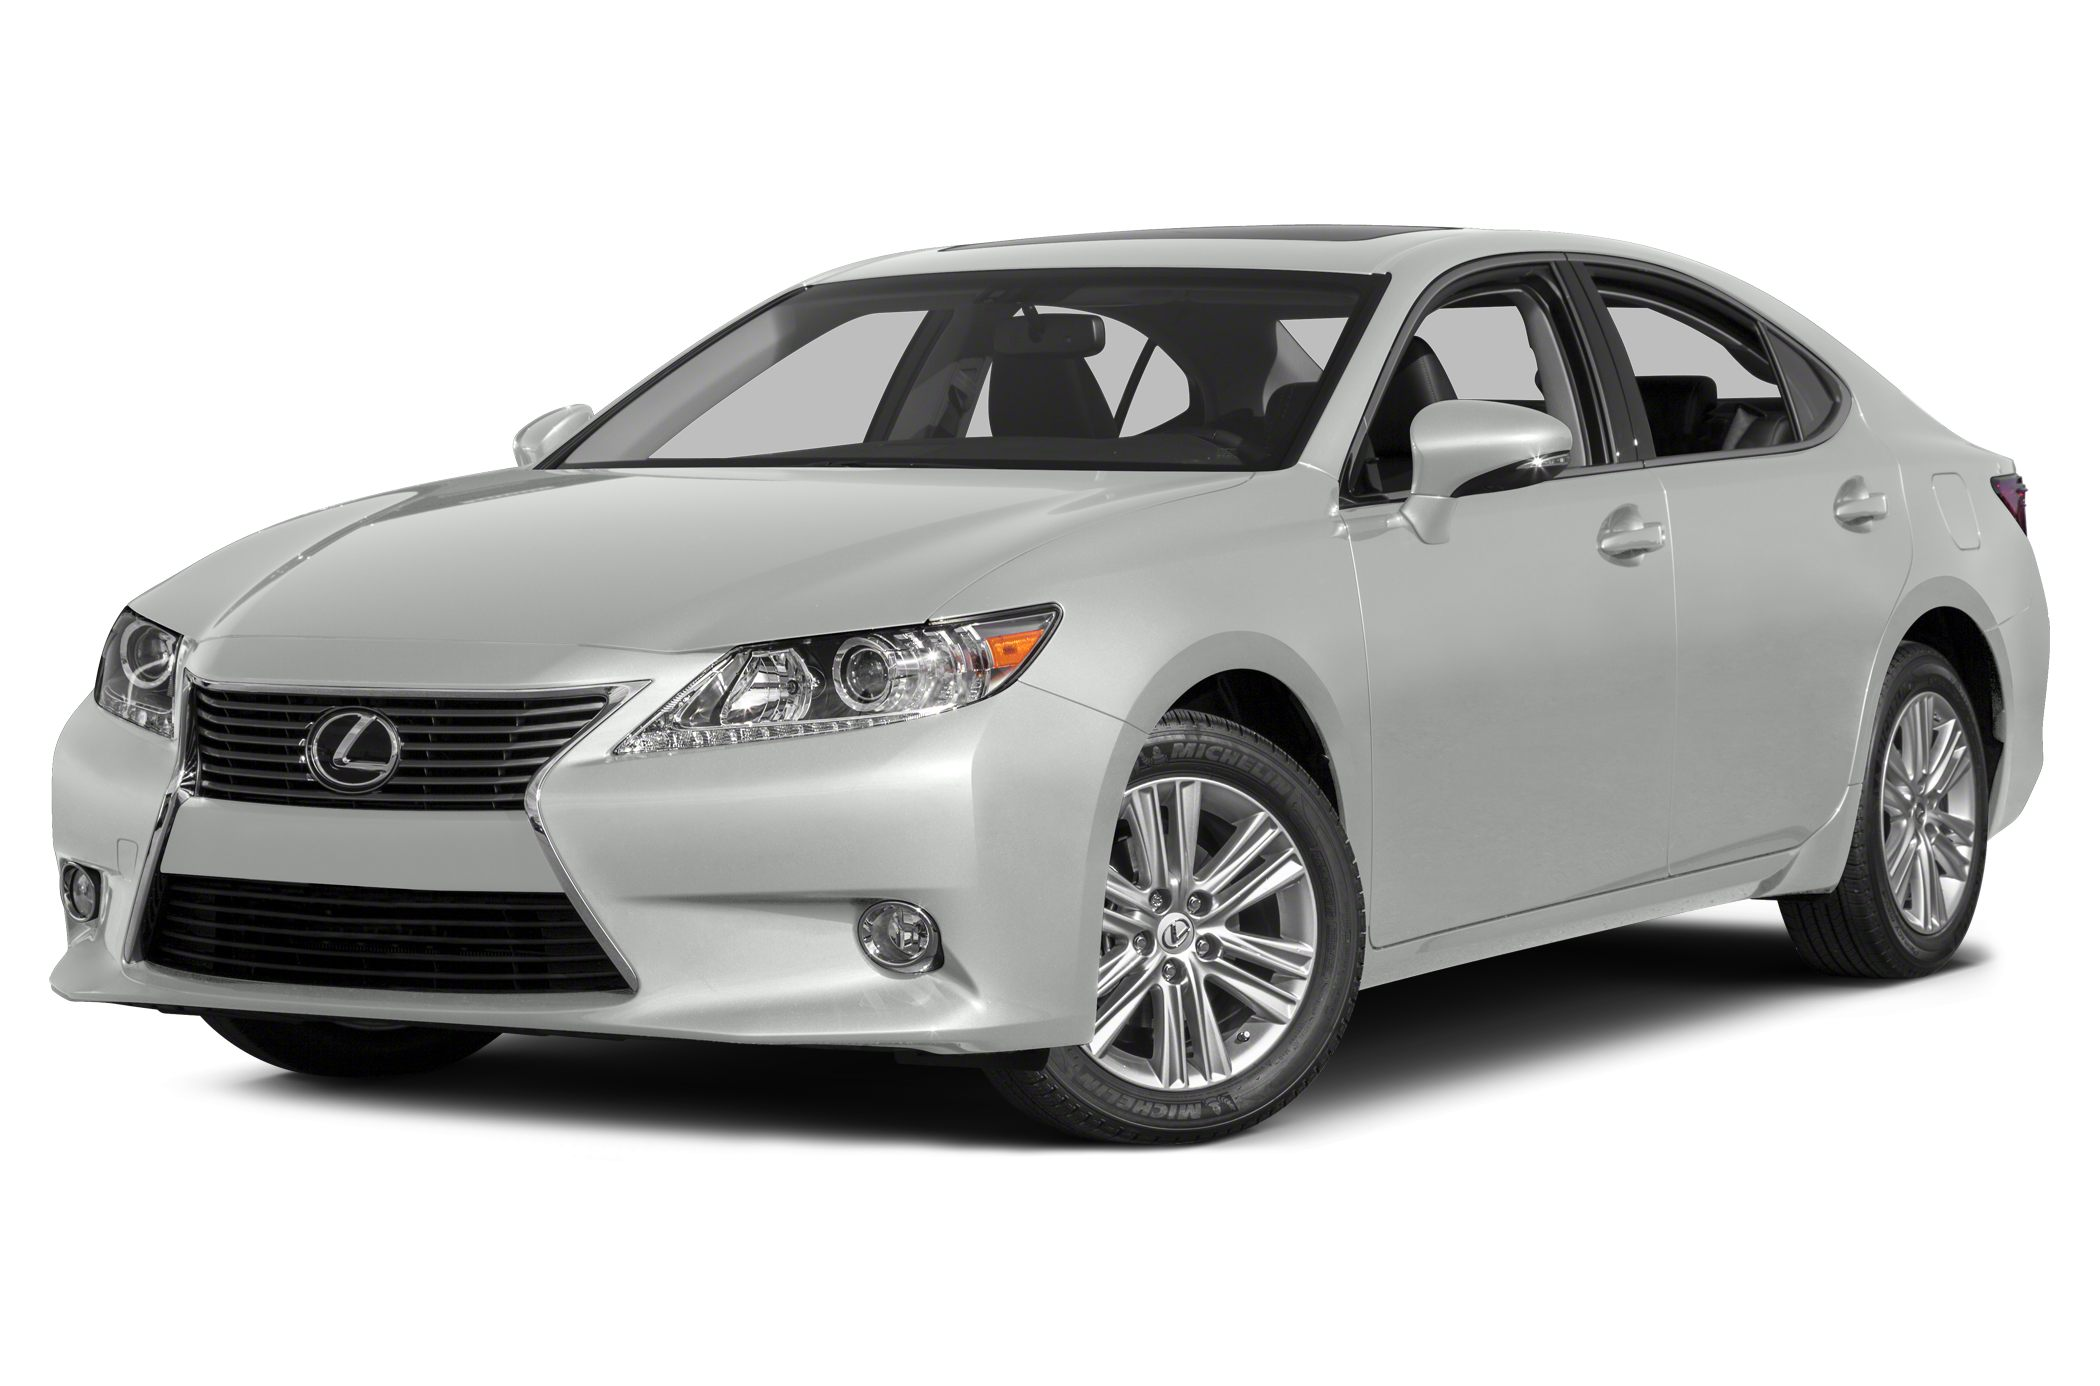 2015 Lexus ES 350 PACKAGE PREMIUM PKG1 OWNERMUST SEELOADED BACK UP CAMERA HID HEADLIGHTS